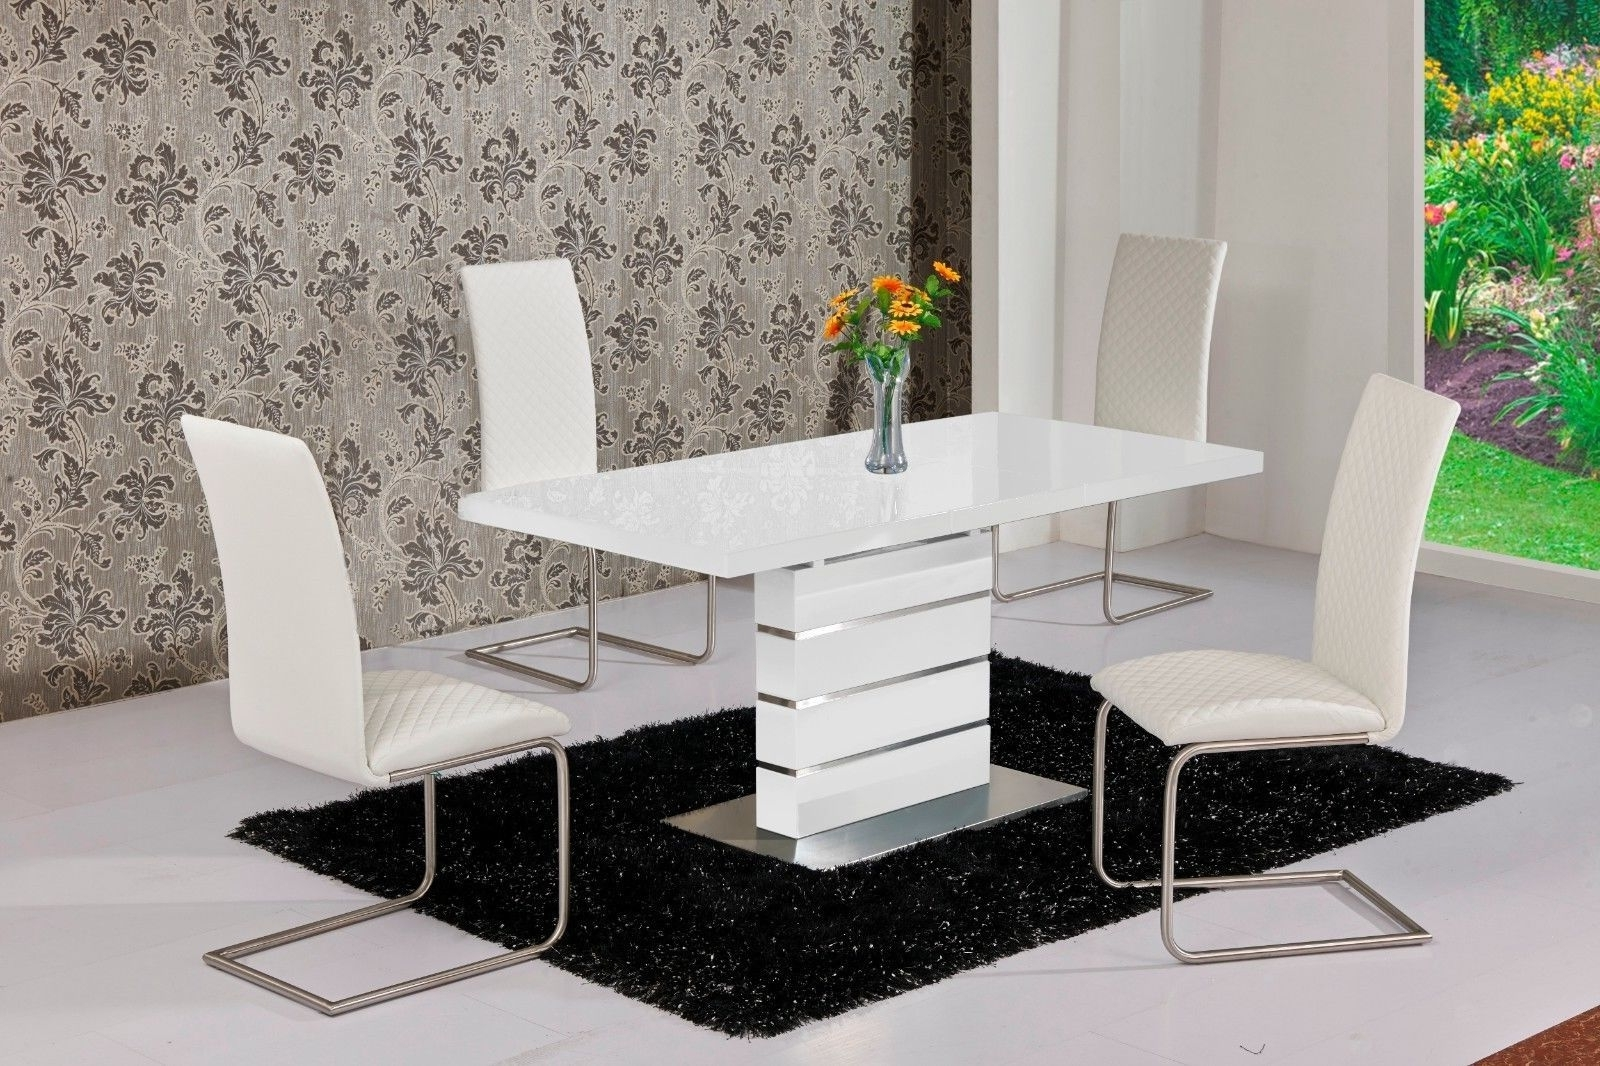 Mace High Gloss Extending 120 160 Dining Table & Chair Set – White Within Popular High Gloss White Extending Dining Tables (Gallery 3 of 25)